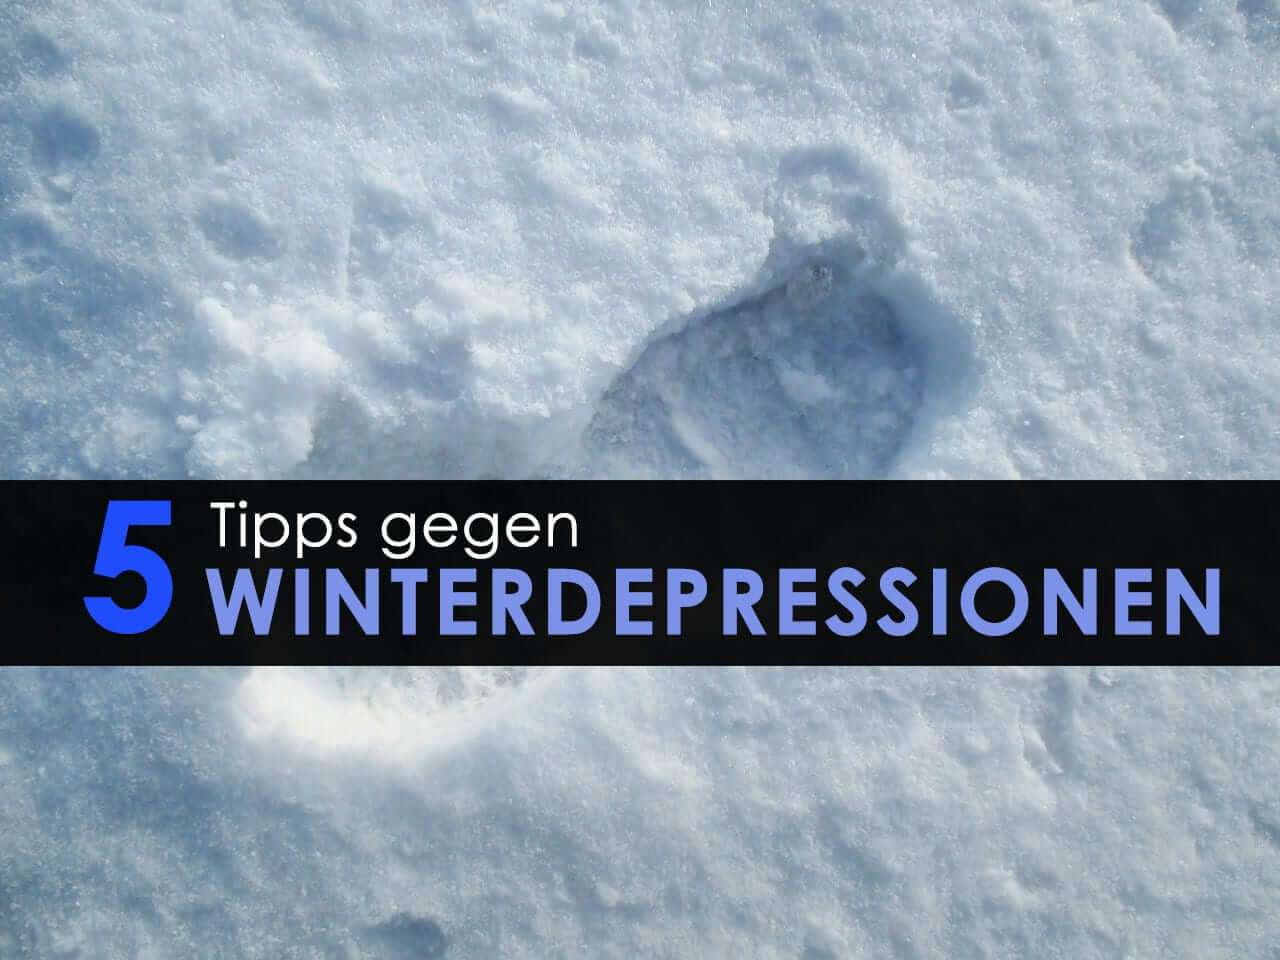 winterdepression was hilft